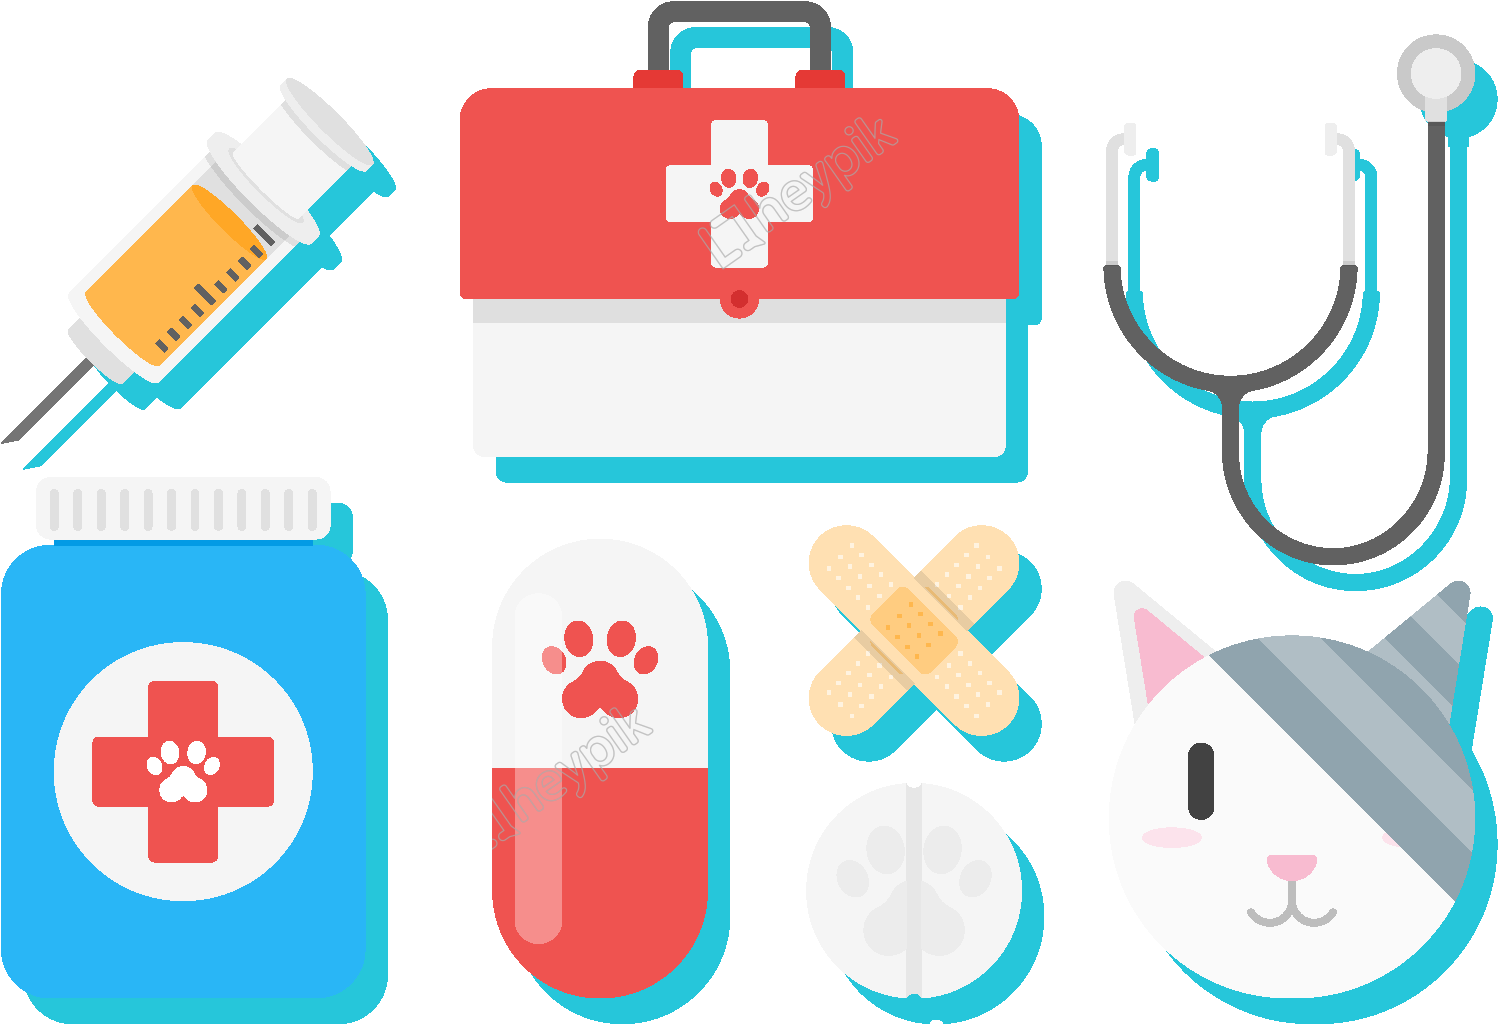 Vet And Sick Animals At Pet House Illustration Royalty Free Cliparts,  Vectors, And Stock Illustration. Image 74386729.